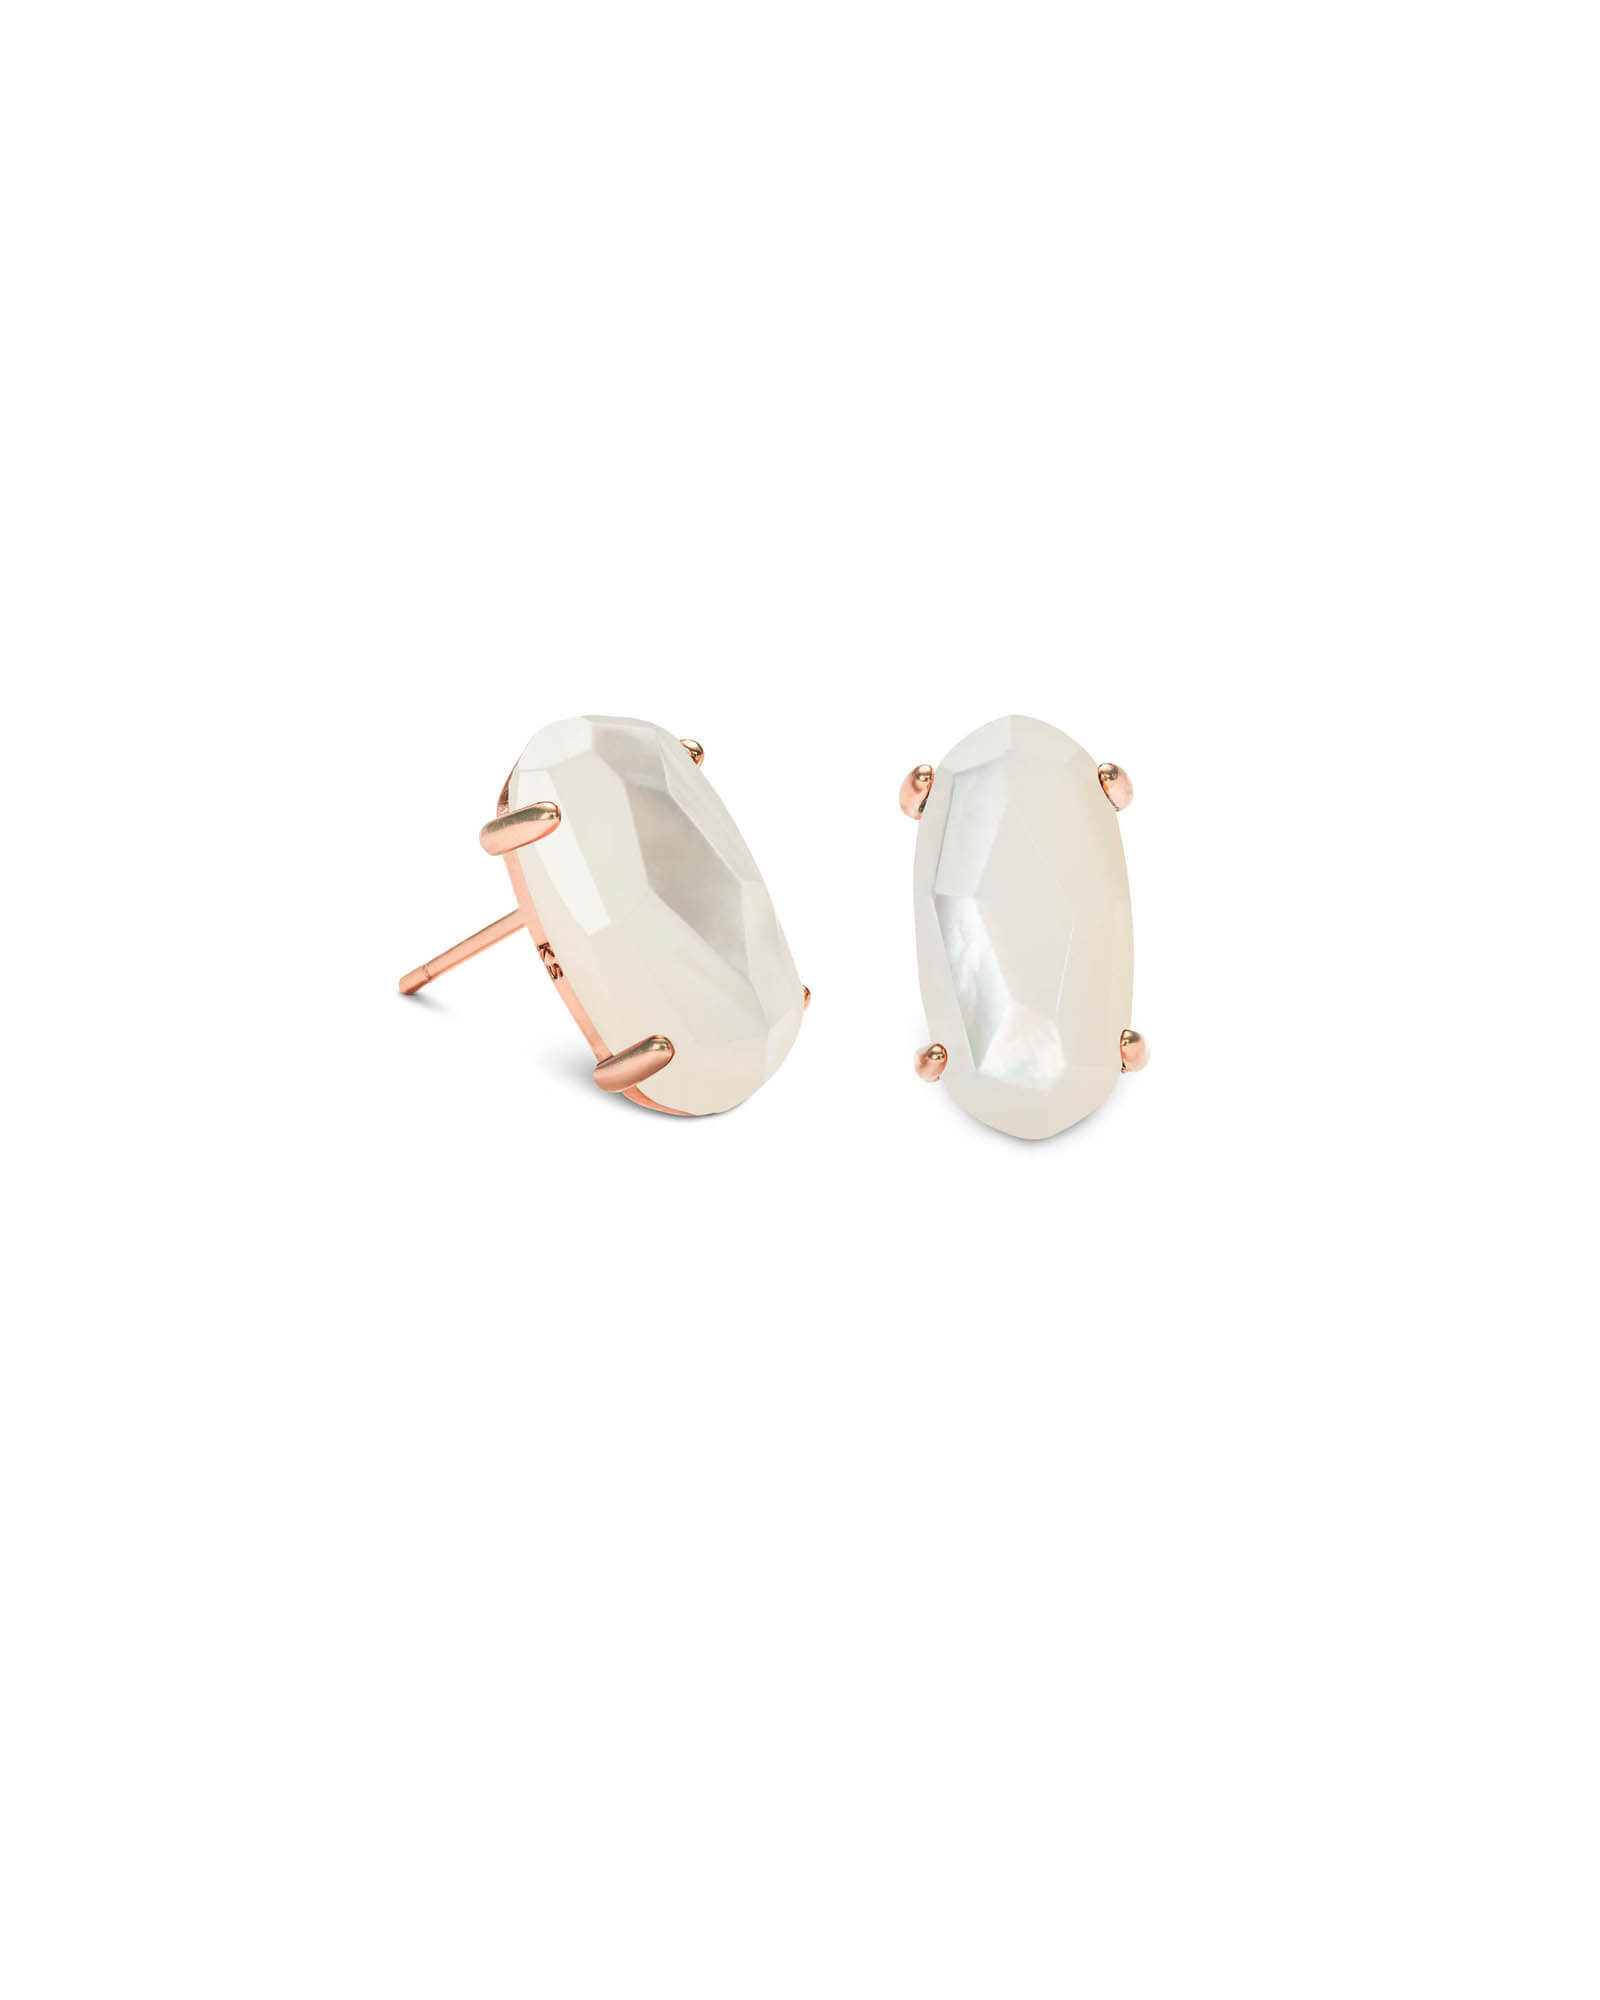 Betty Rose Gold Stud Earrings in Ivory Pearl